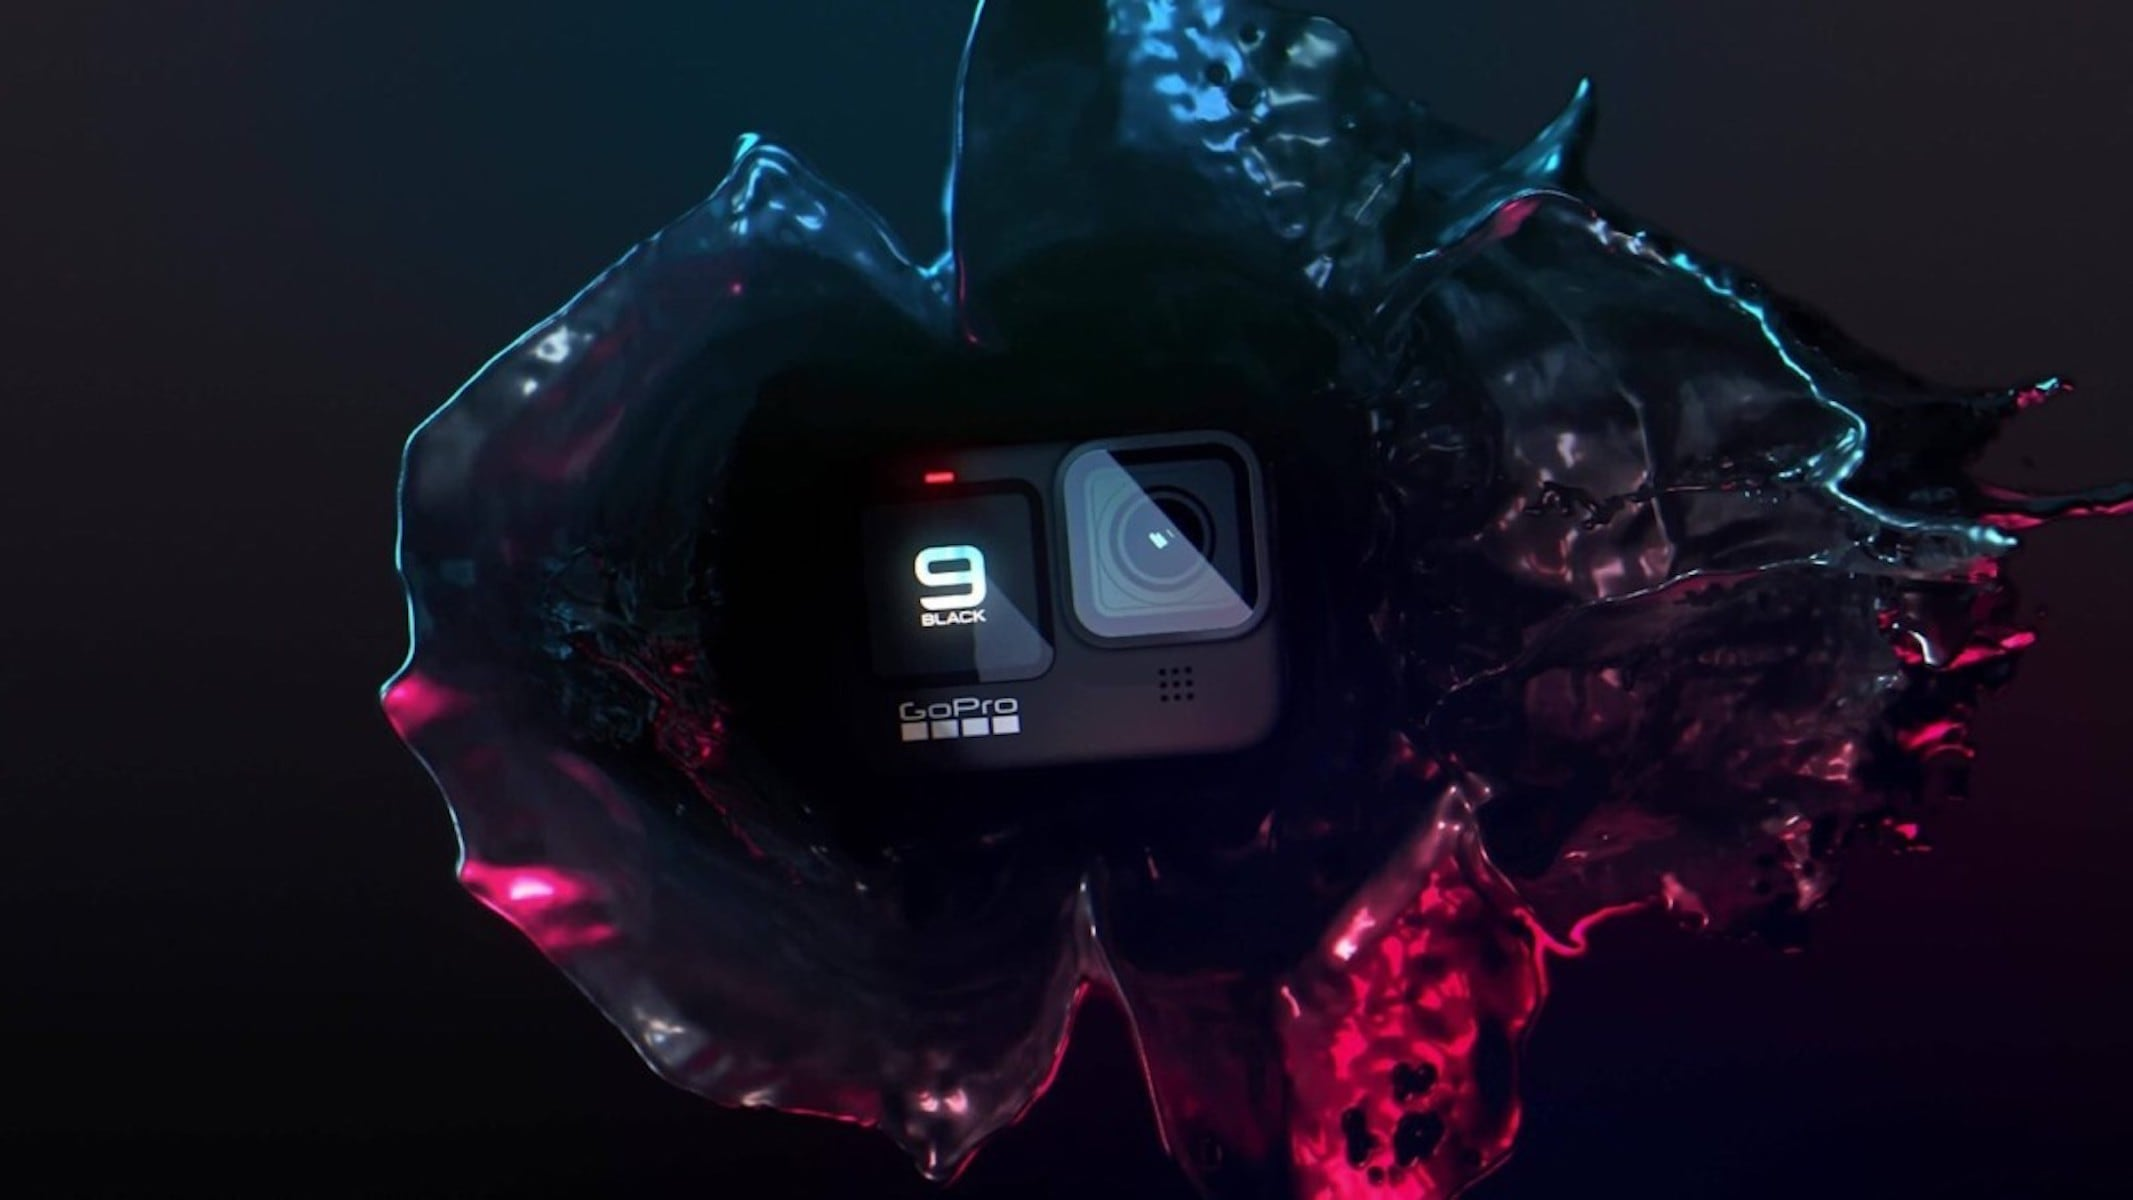 GoPro HERO9 Black 5K Action Camera in Black